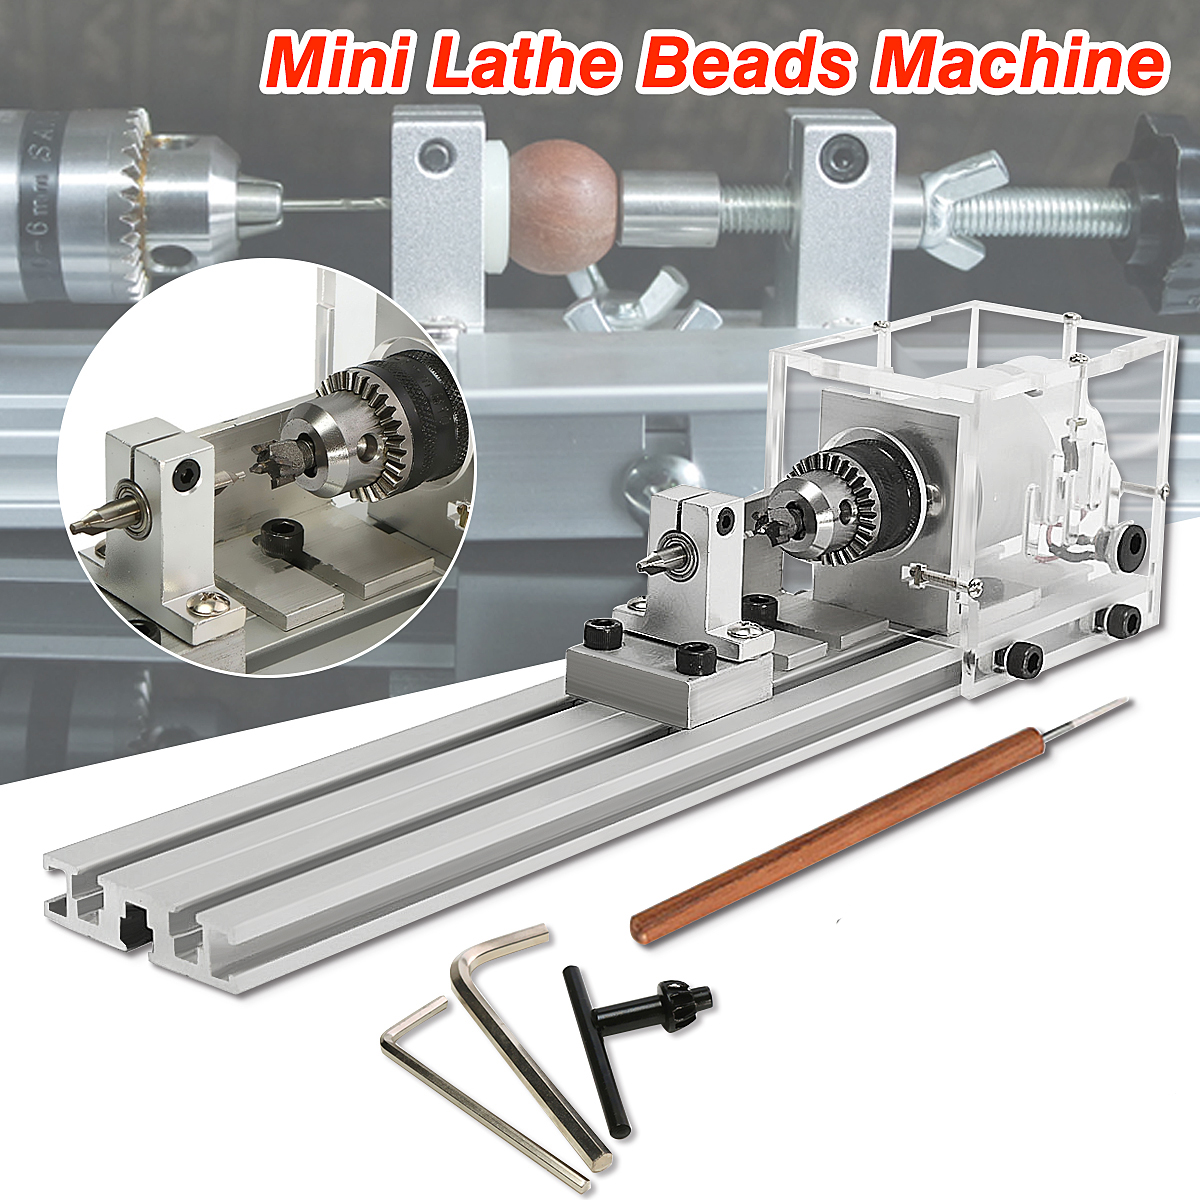 Mini Lathe Beads Machine Woodworking DIY Lathe Standard Set Polishing Cutting Drill Rotary Tool 80W DC 24V dc 3v 24v mini electric hand drill rotary tool diy 385 motor w 24v power supply g205m best quality